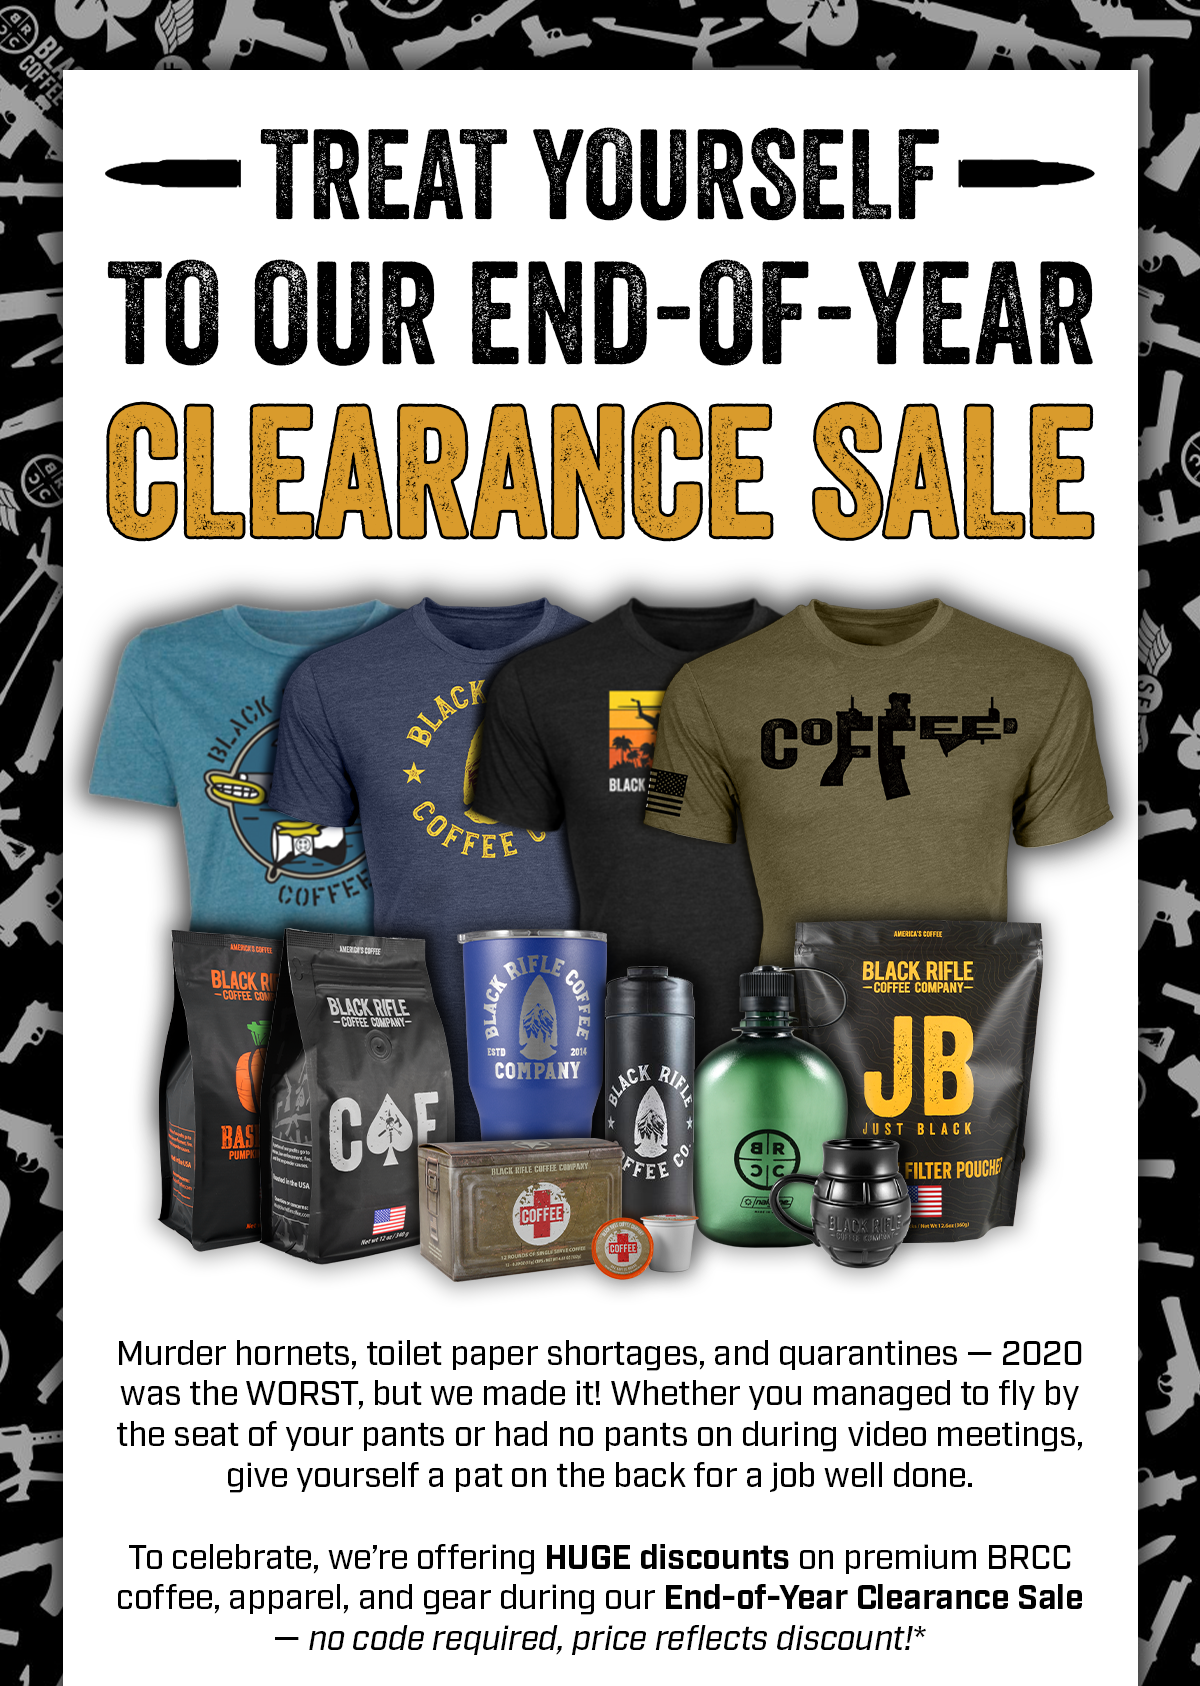 Treat Yourself to our End-of-Year Clearance Sale